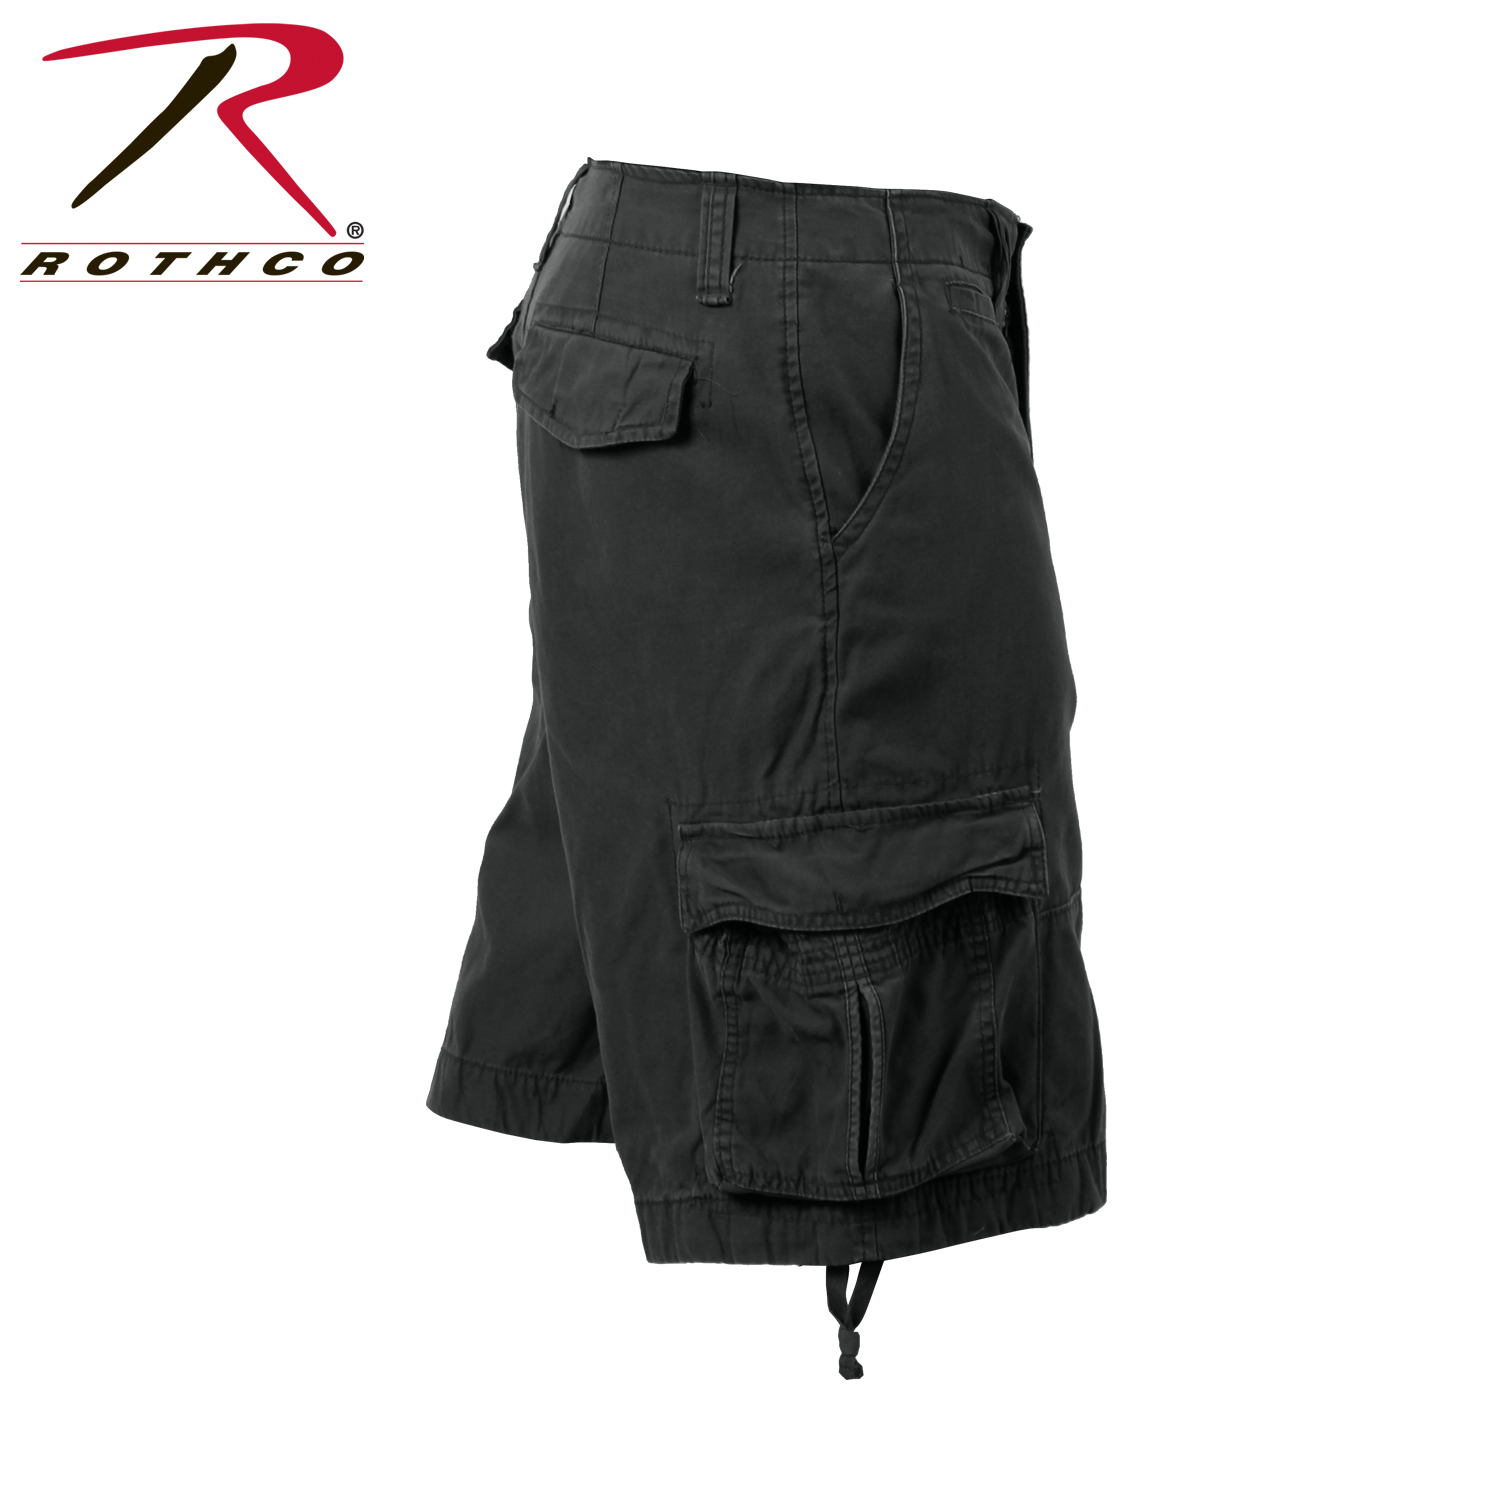 949f7bd85d Rothco Vintage Infantry Utility shorts